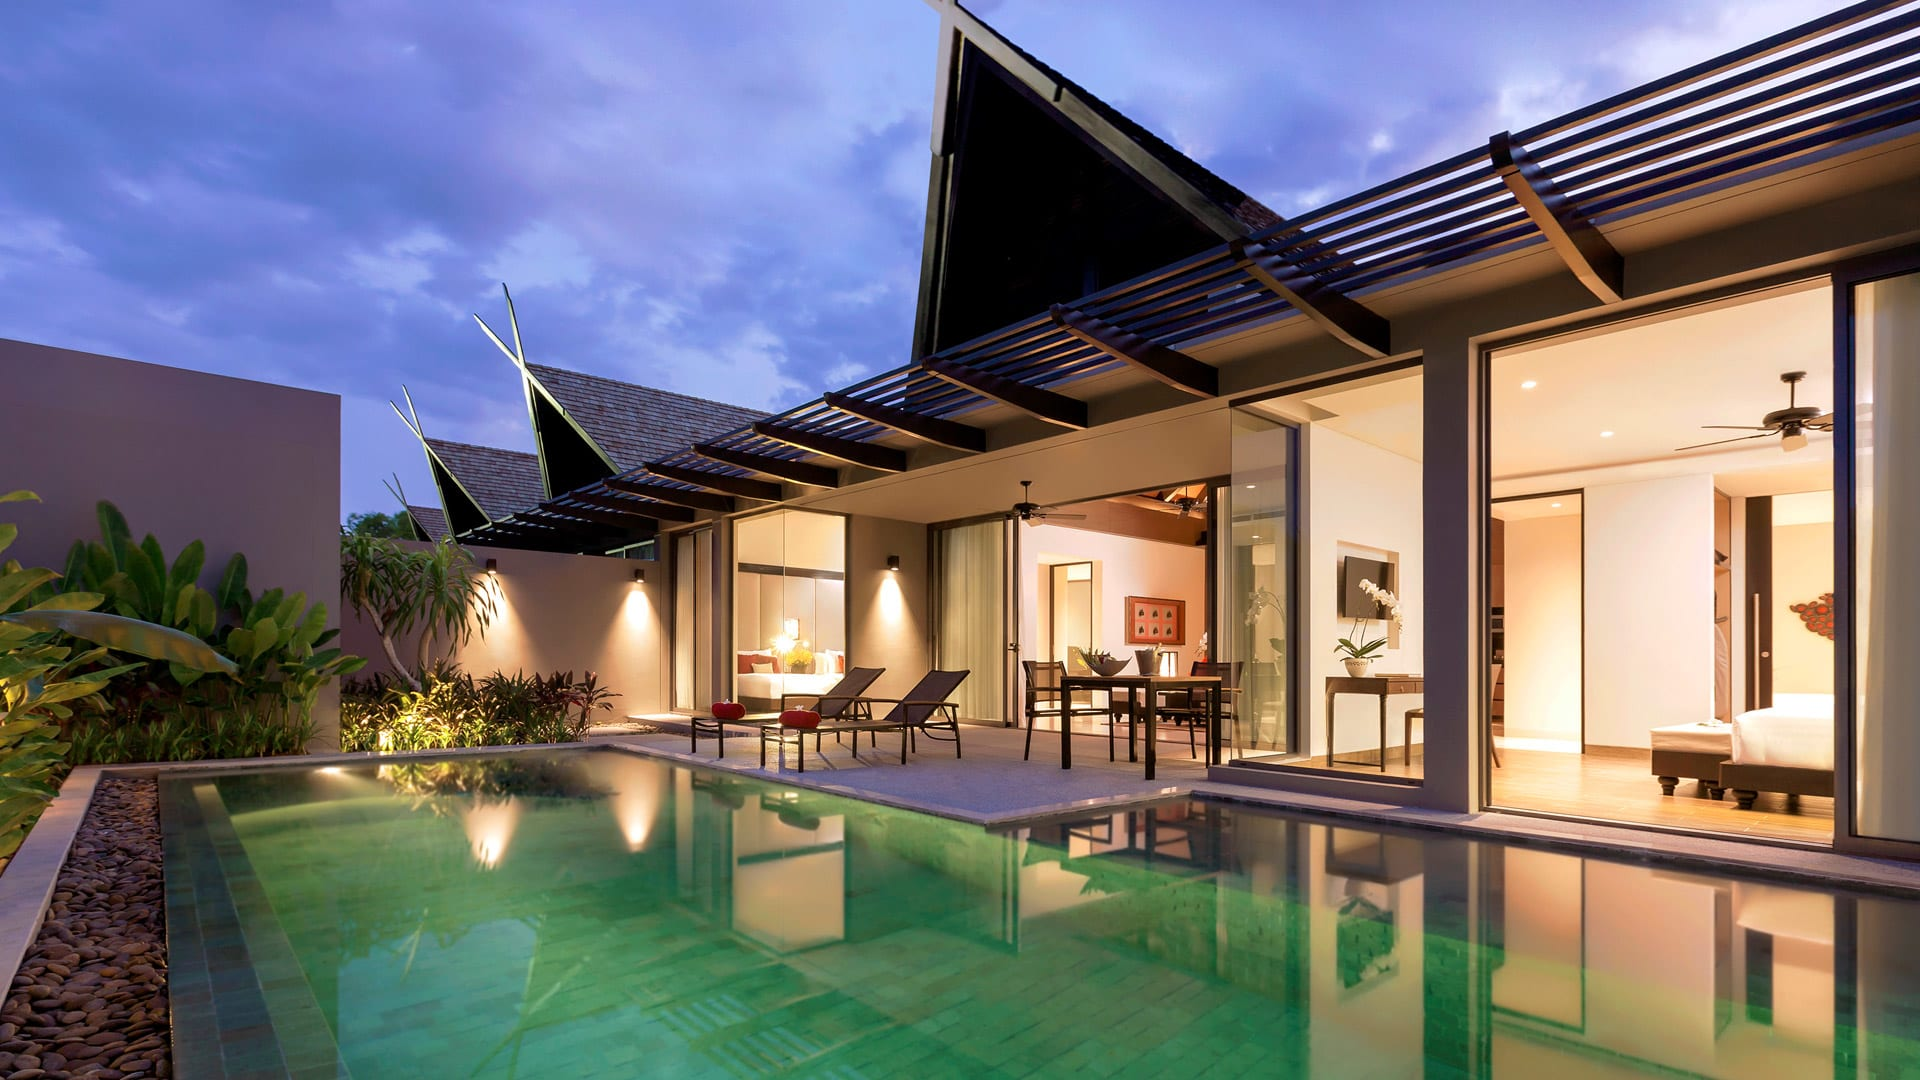 https://assets.anantara.com/image/upload/q_auto,f_auto/media/minor/anantara/images/anantara-vacation-club-mai-khao-phuket/the-resort/avc_mai_khao_1920x1080.jpg